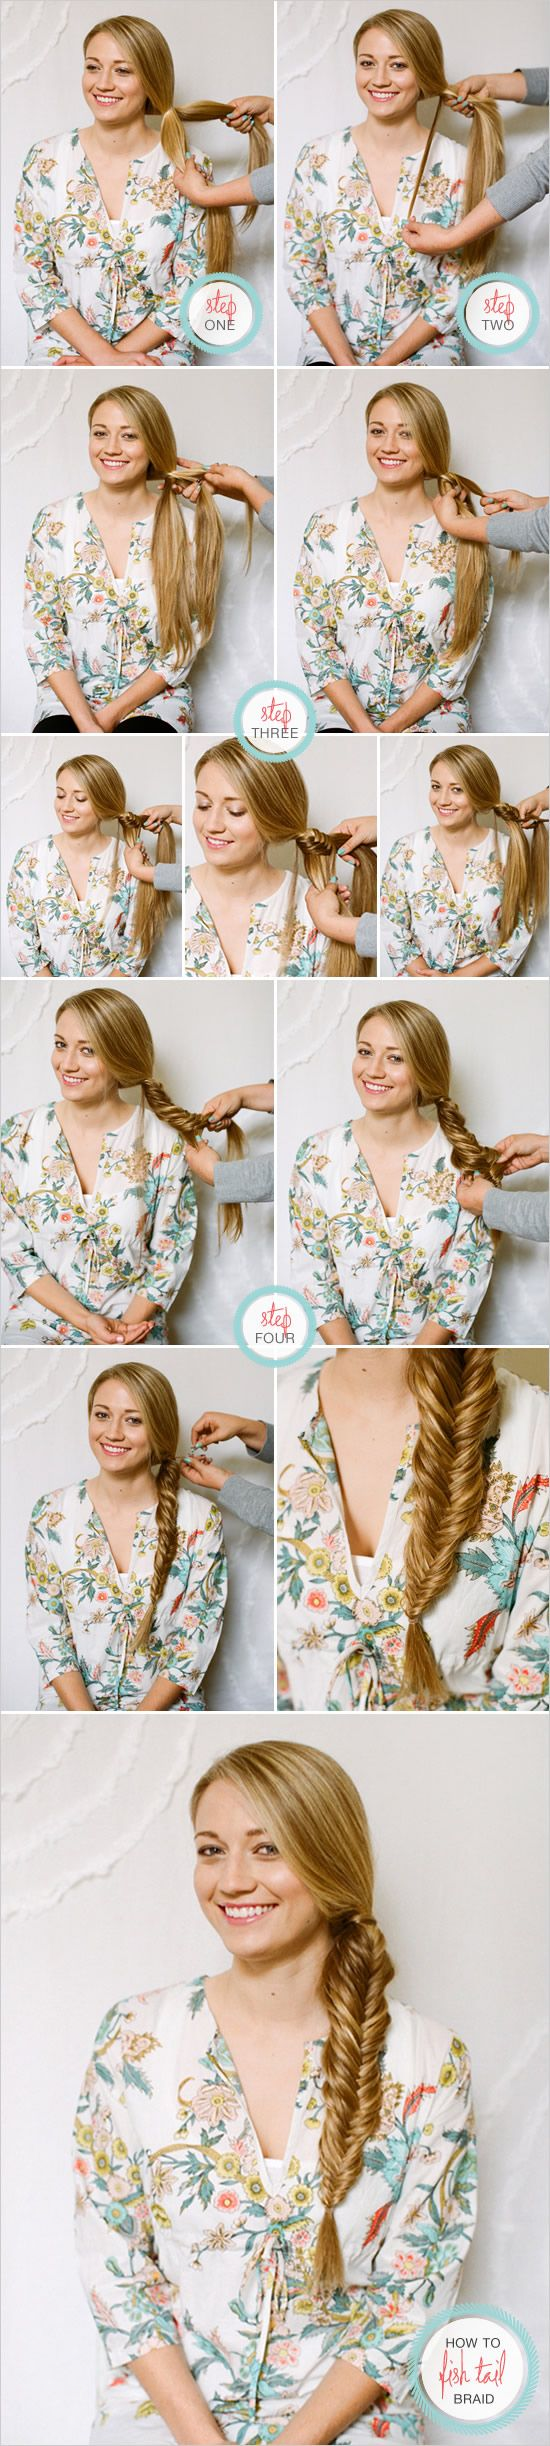 It has been a while since we had a hair or makeup tutorial to share with you. Summer is coming and the weather is warming up we thought a fish-tail braid s